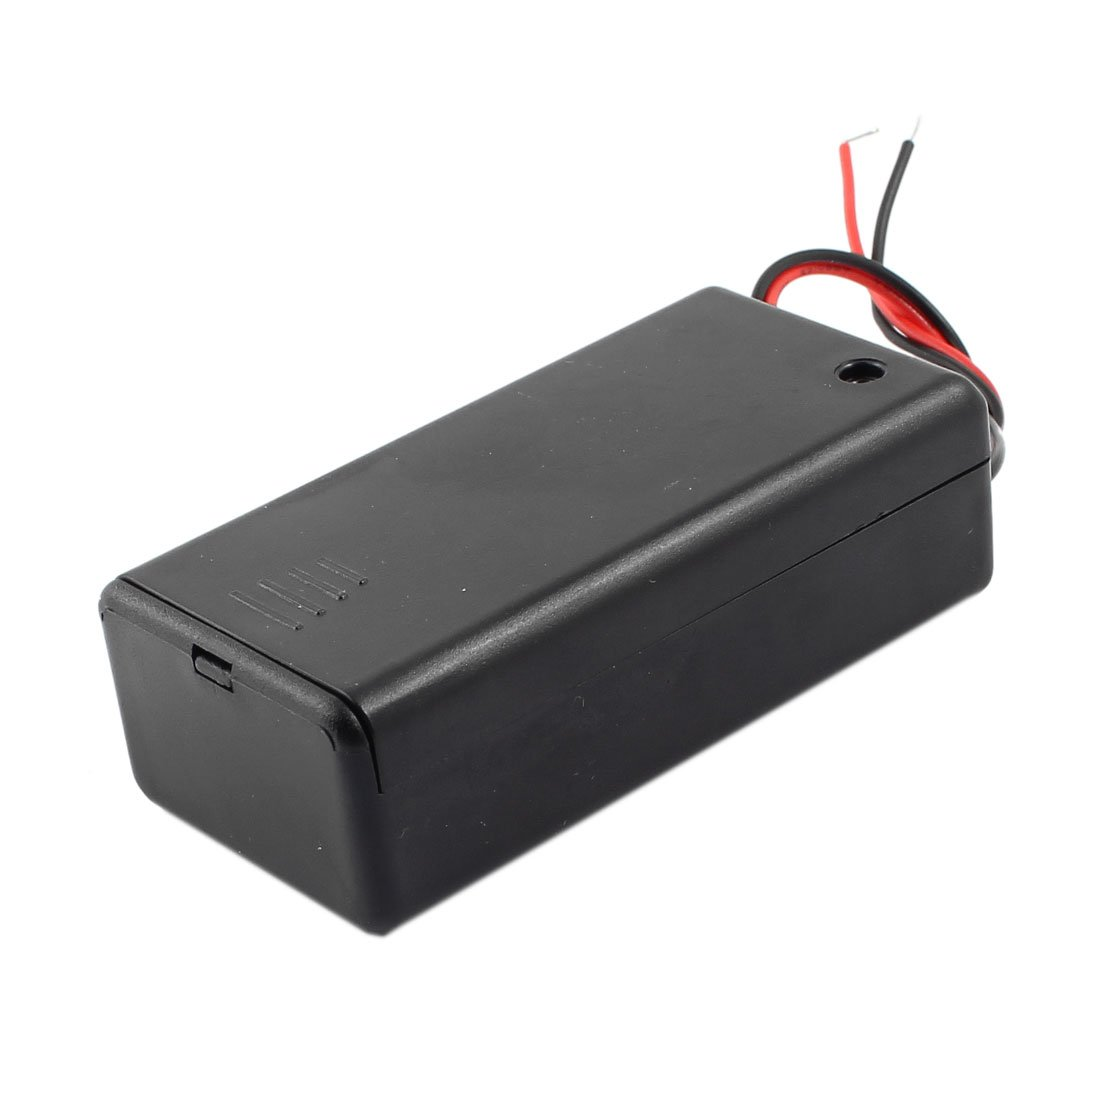 uxcell ON/Off Switch 2-Wire Battery Holder Box Case Black for 9V Batteries Plastic Storage Container Organizer Adapter a14062000ux0473